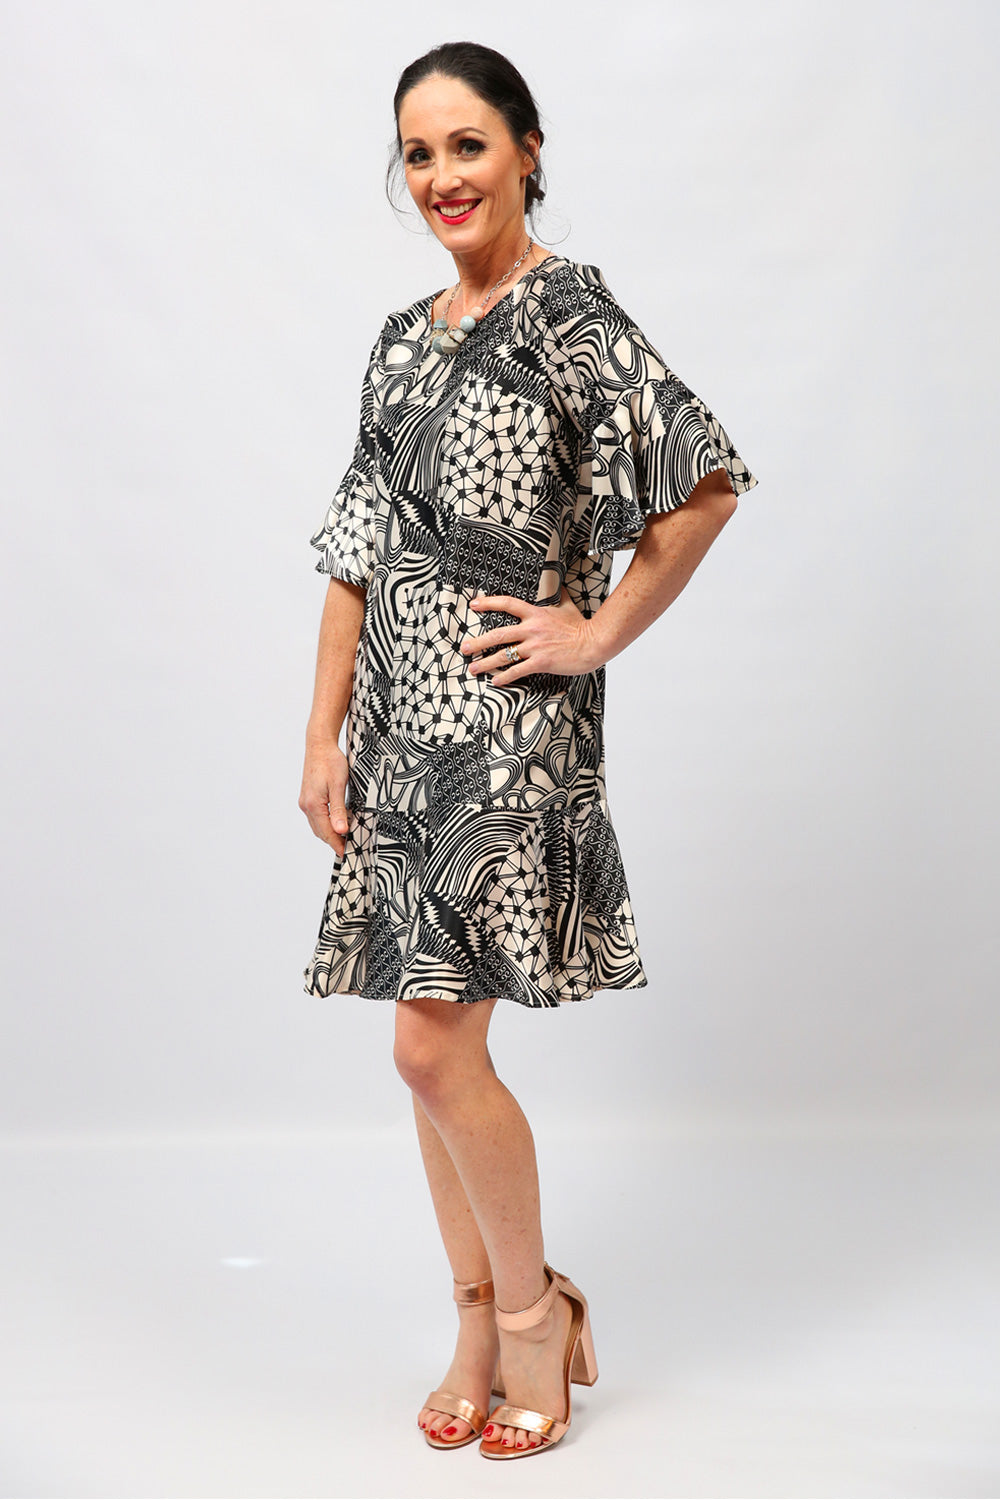 Renee Cindy Dress